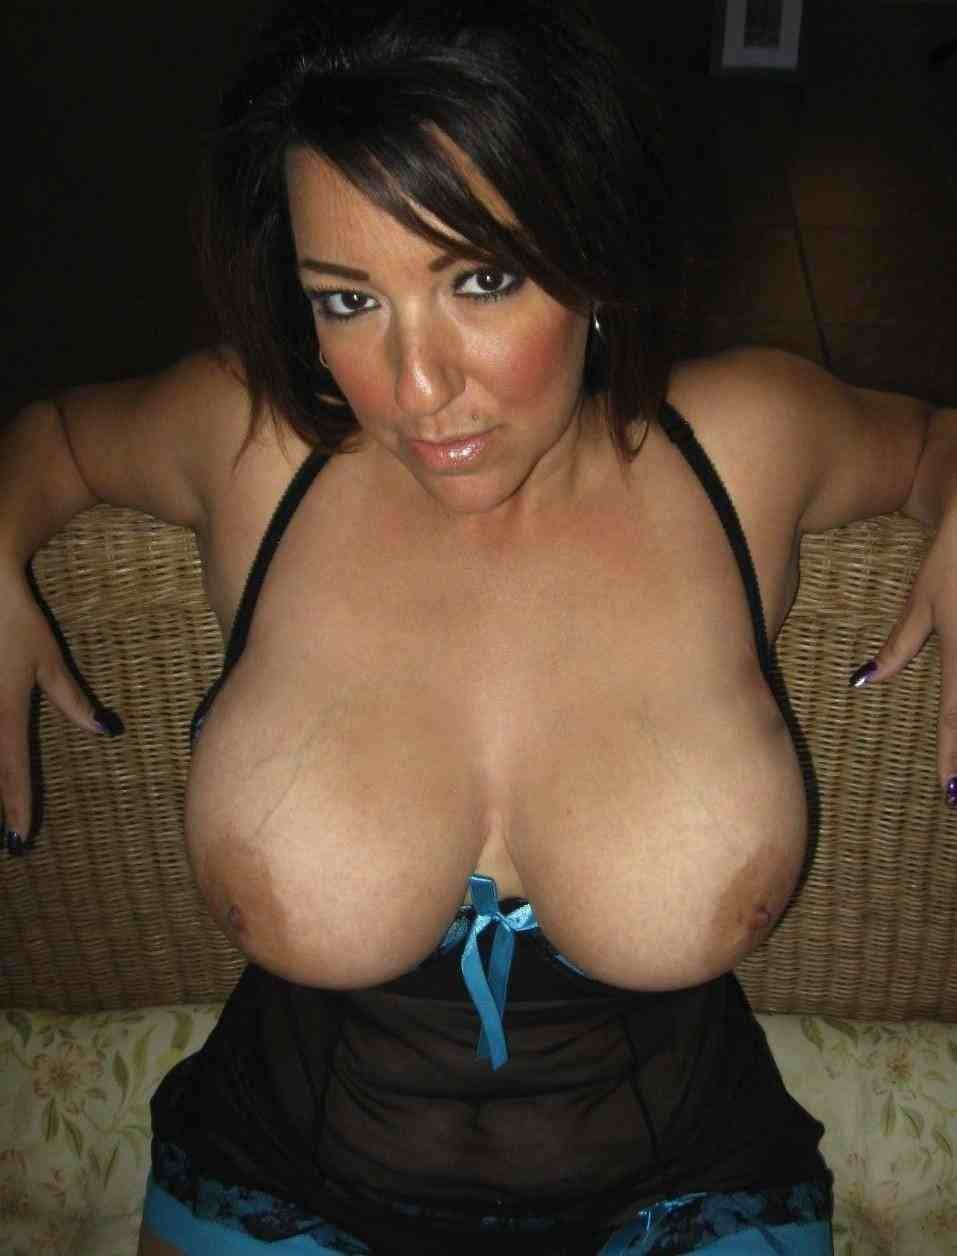 Bigtit older wife nude at home